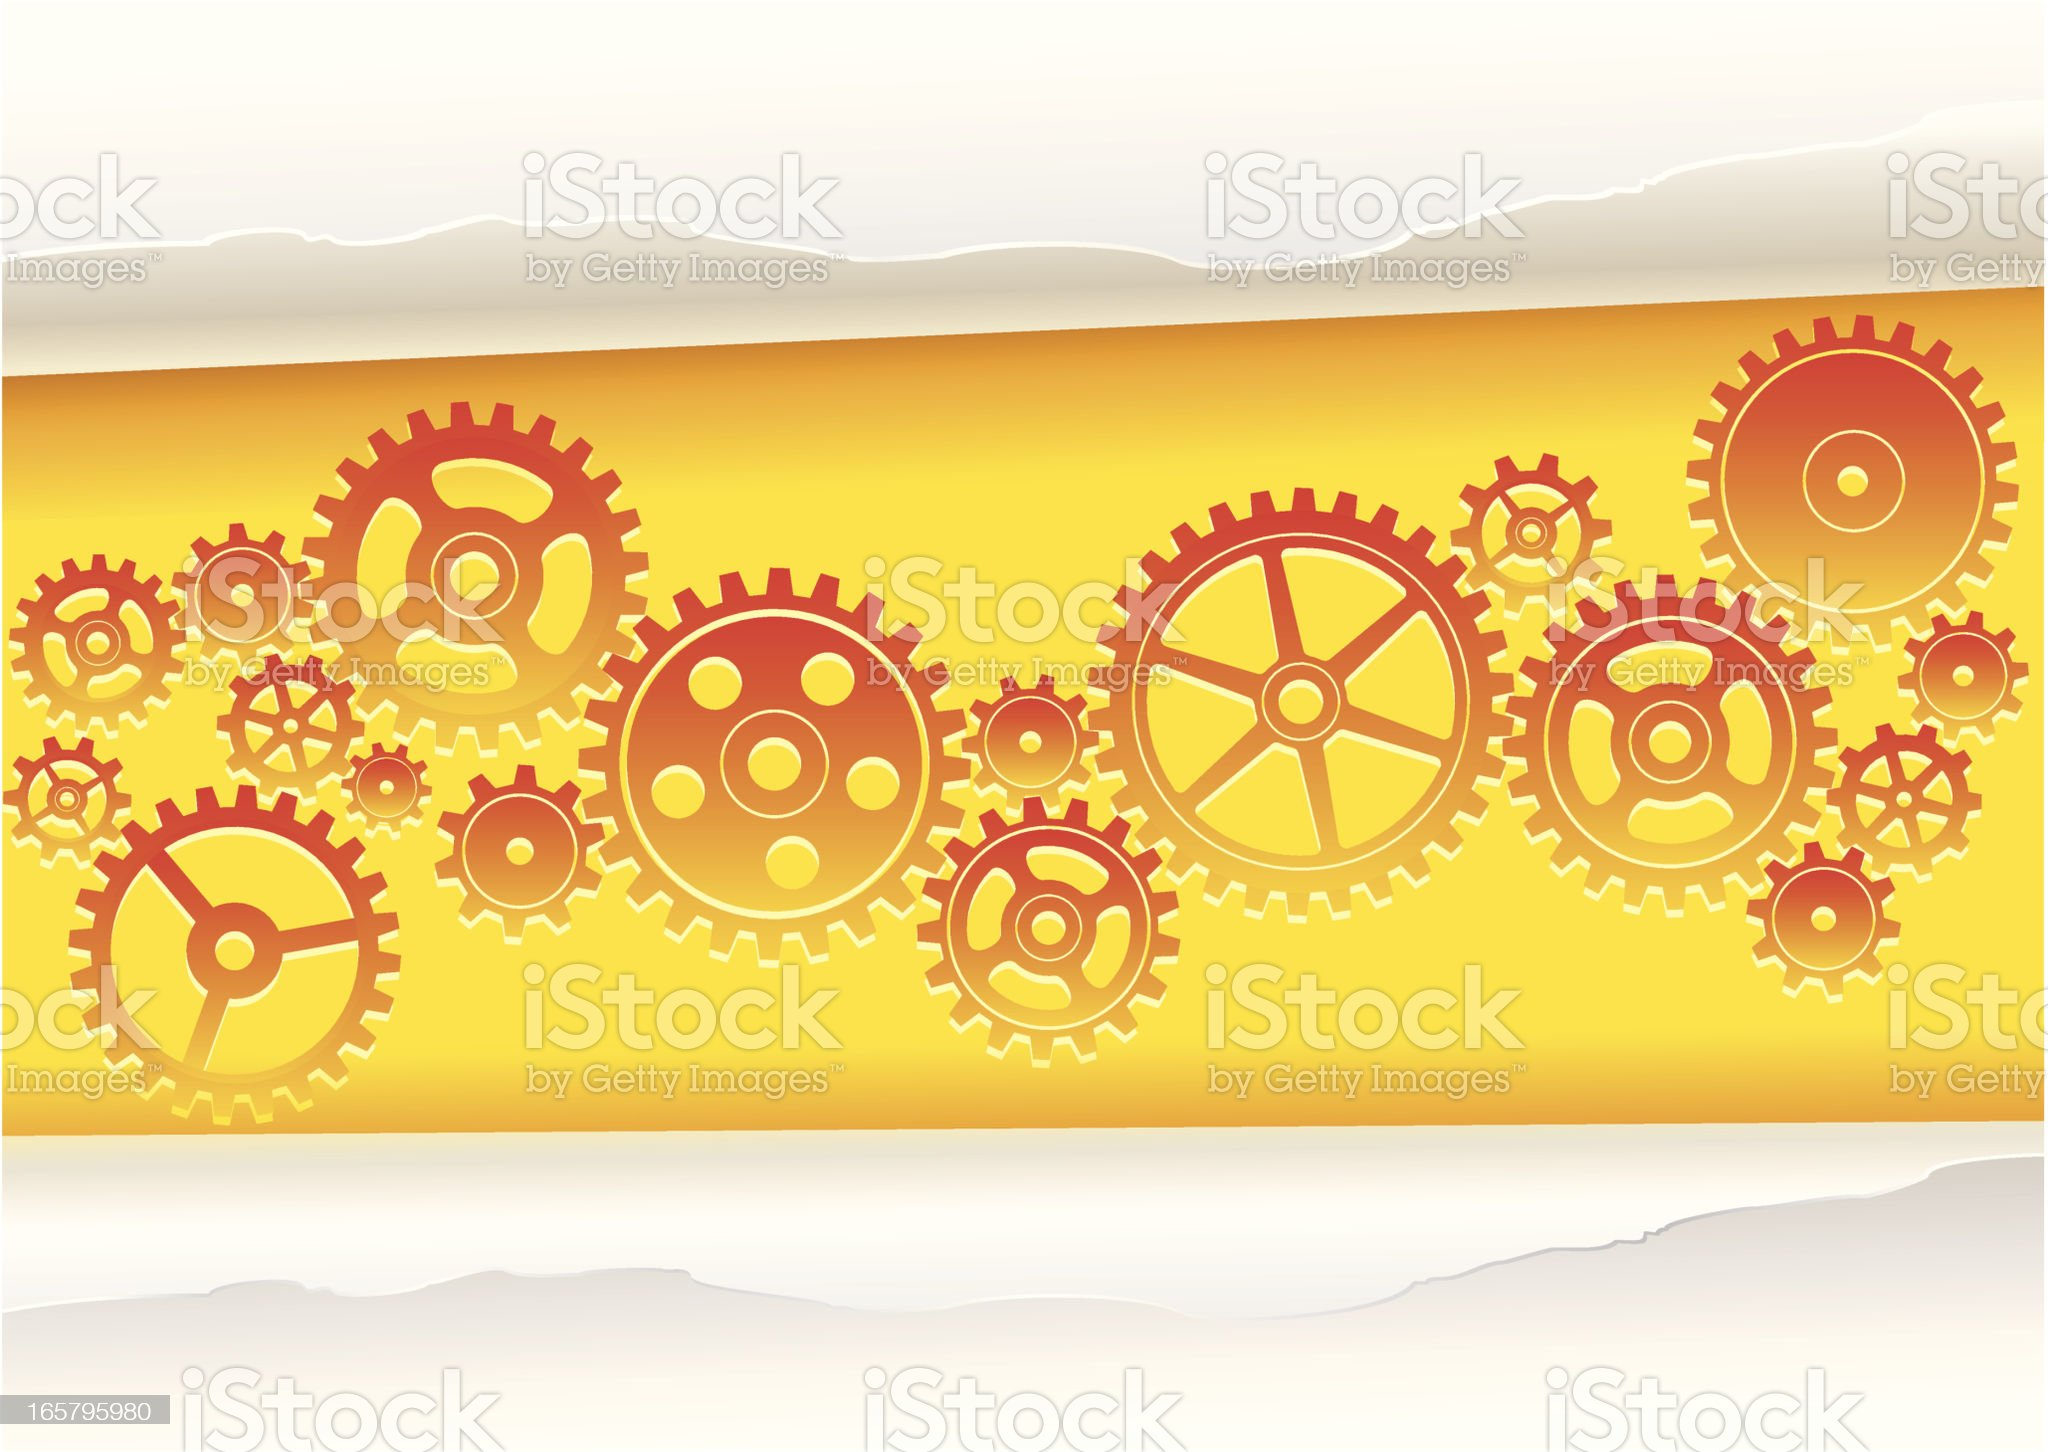 Solutions underneath the paper royalty-free stock vector art